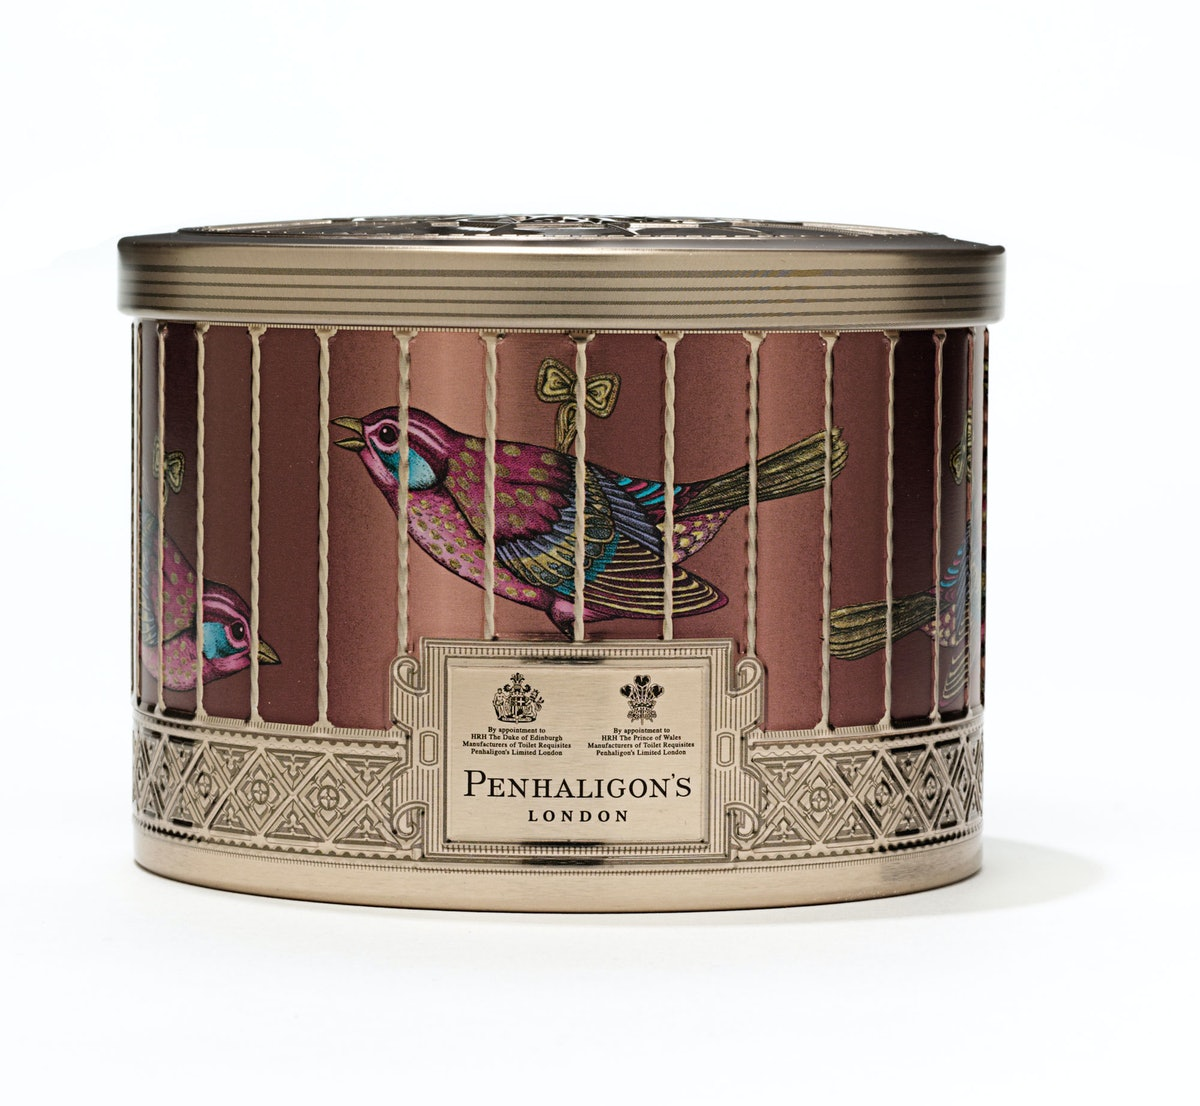 Penhaligon's Ladies Fragrance Collection, $50 (including five scents), [saks.com](http://rstyle.me/n/dxirw3w3n).